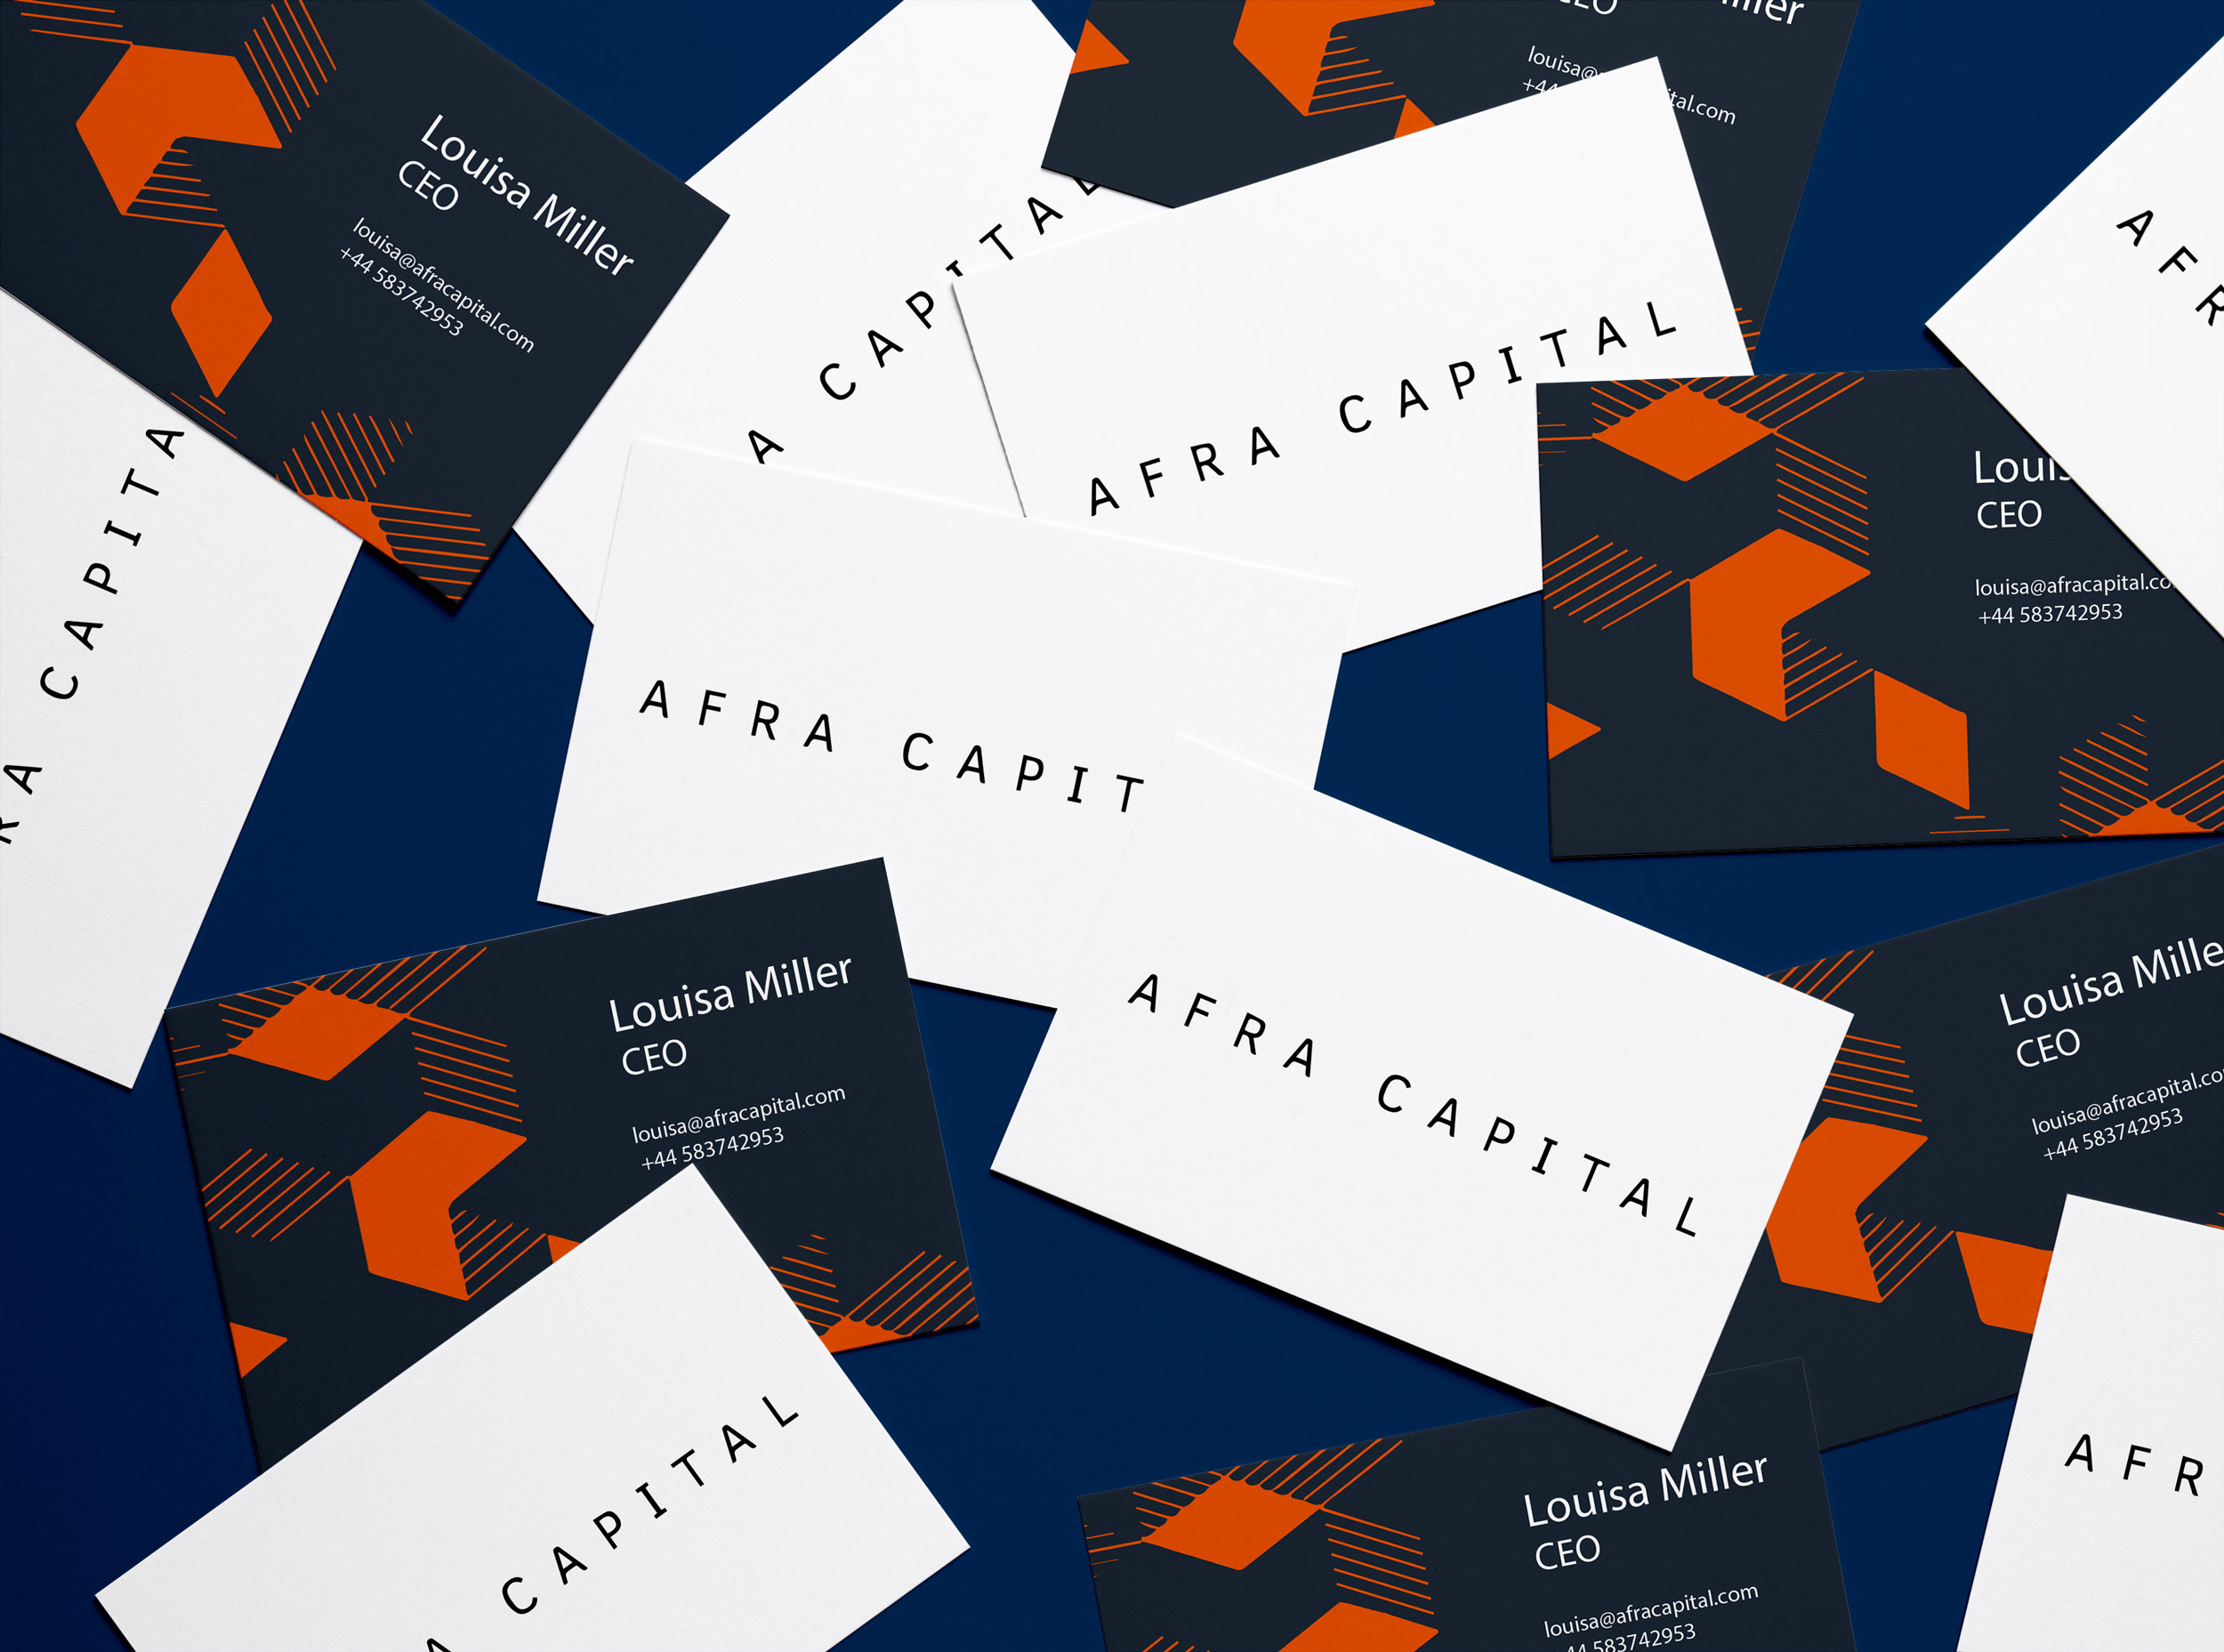 Afra Capital Business Cards